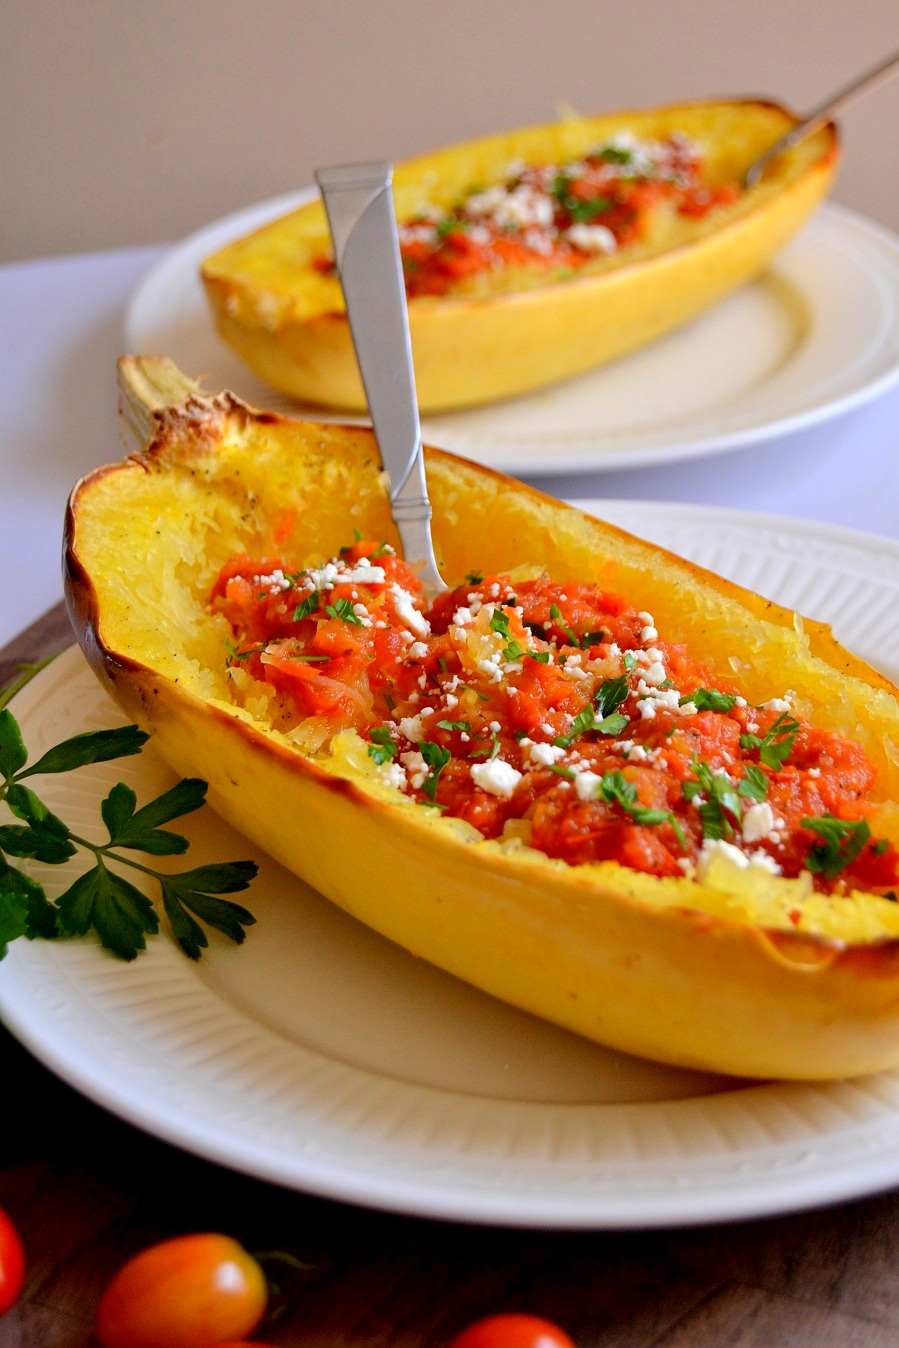 Spaghetti Squash with Roasted Garlic Cherry Tomato Sauce